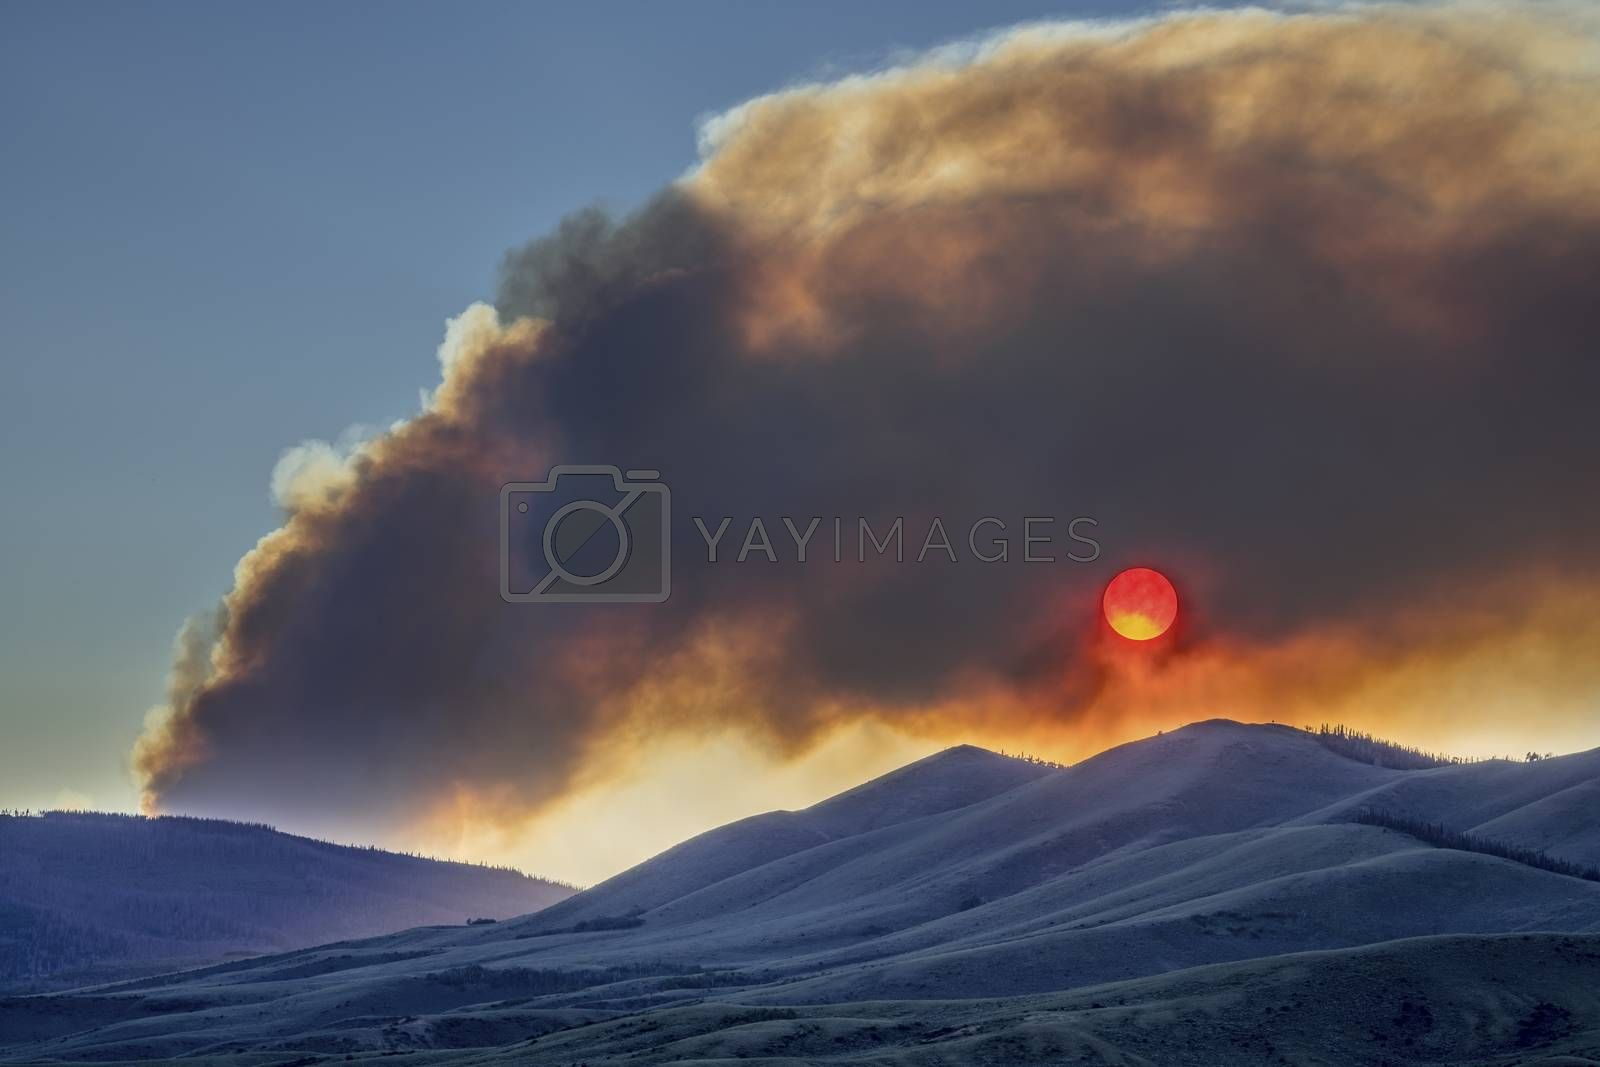 wildfire smoke plume obscuring sunset over mountains - North Park, Colorado